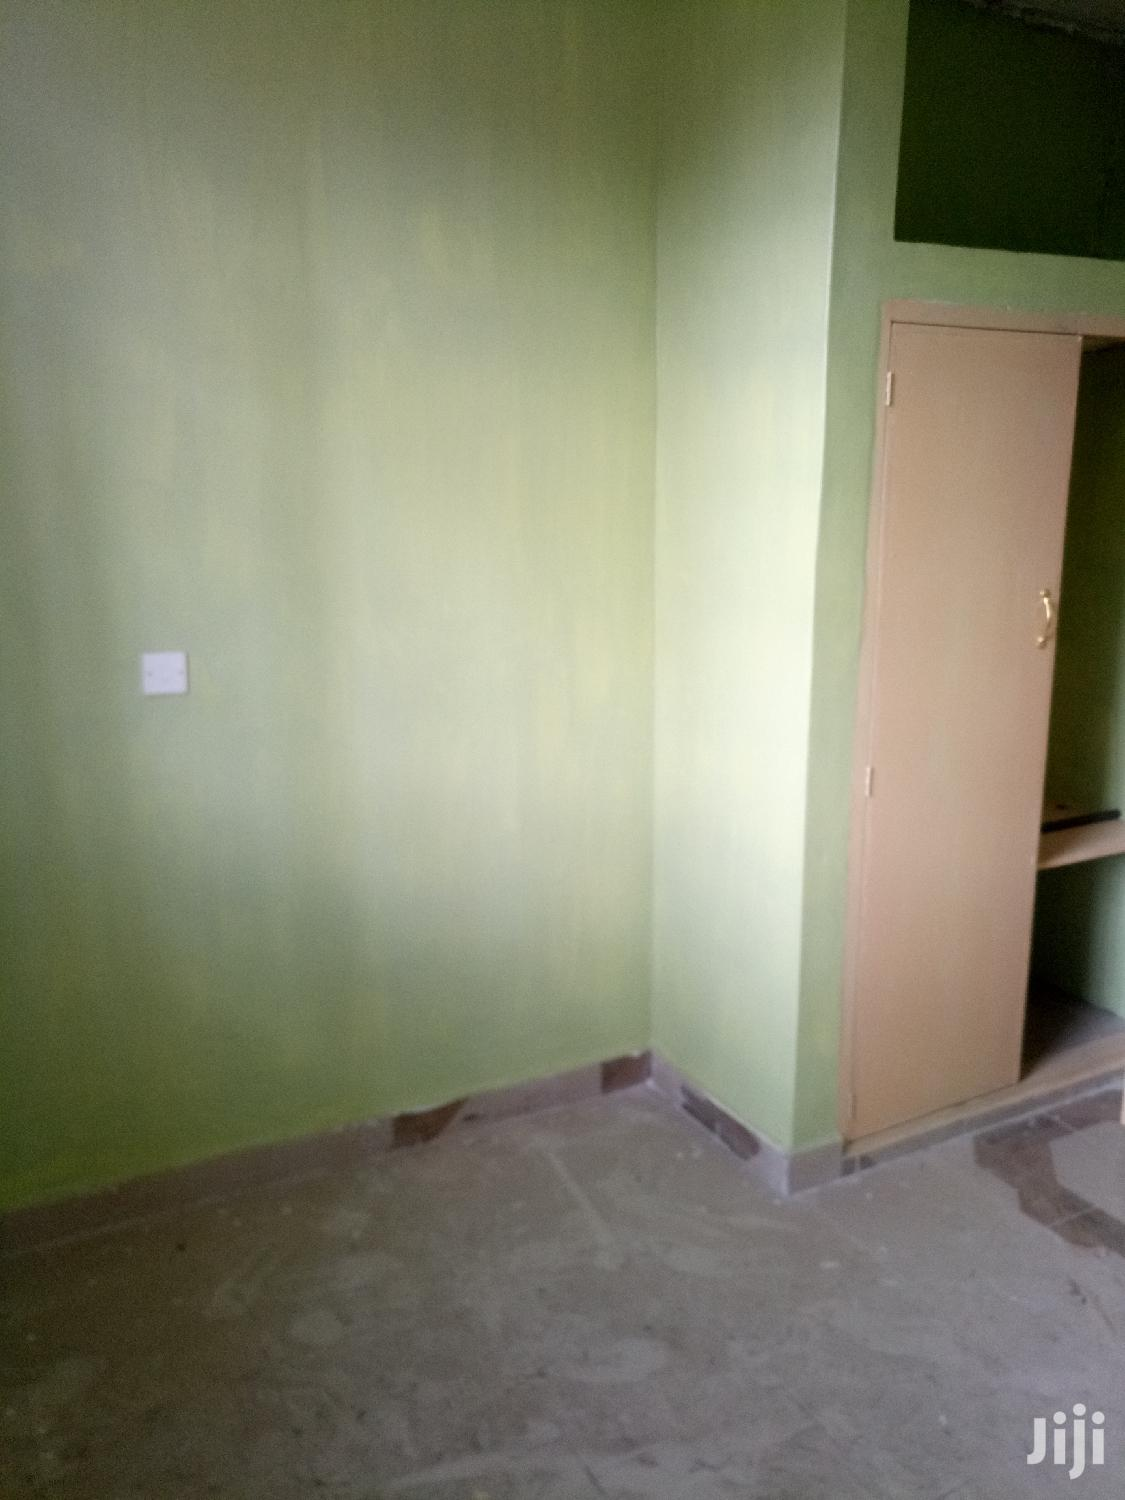 New One Bedroom To Let | Houses & Apartments For Rent for sale in Ongata Rongai, Kajiado, Kenya